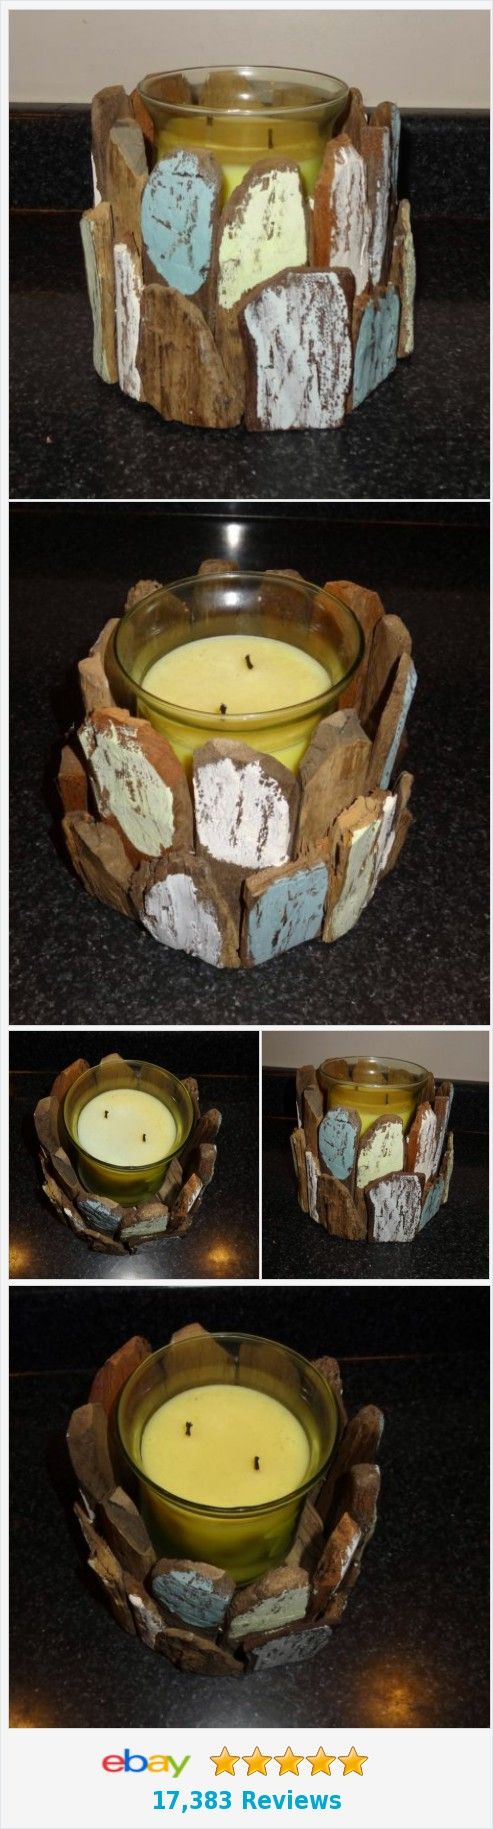 Wooden bark candle holder rustic vintage look blues white